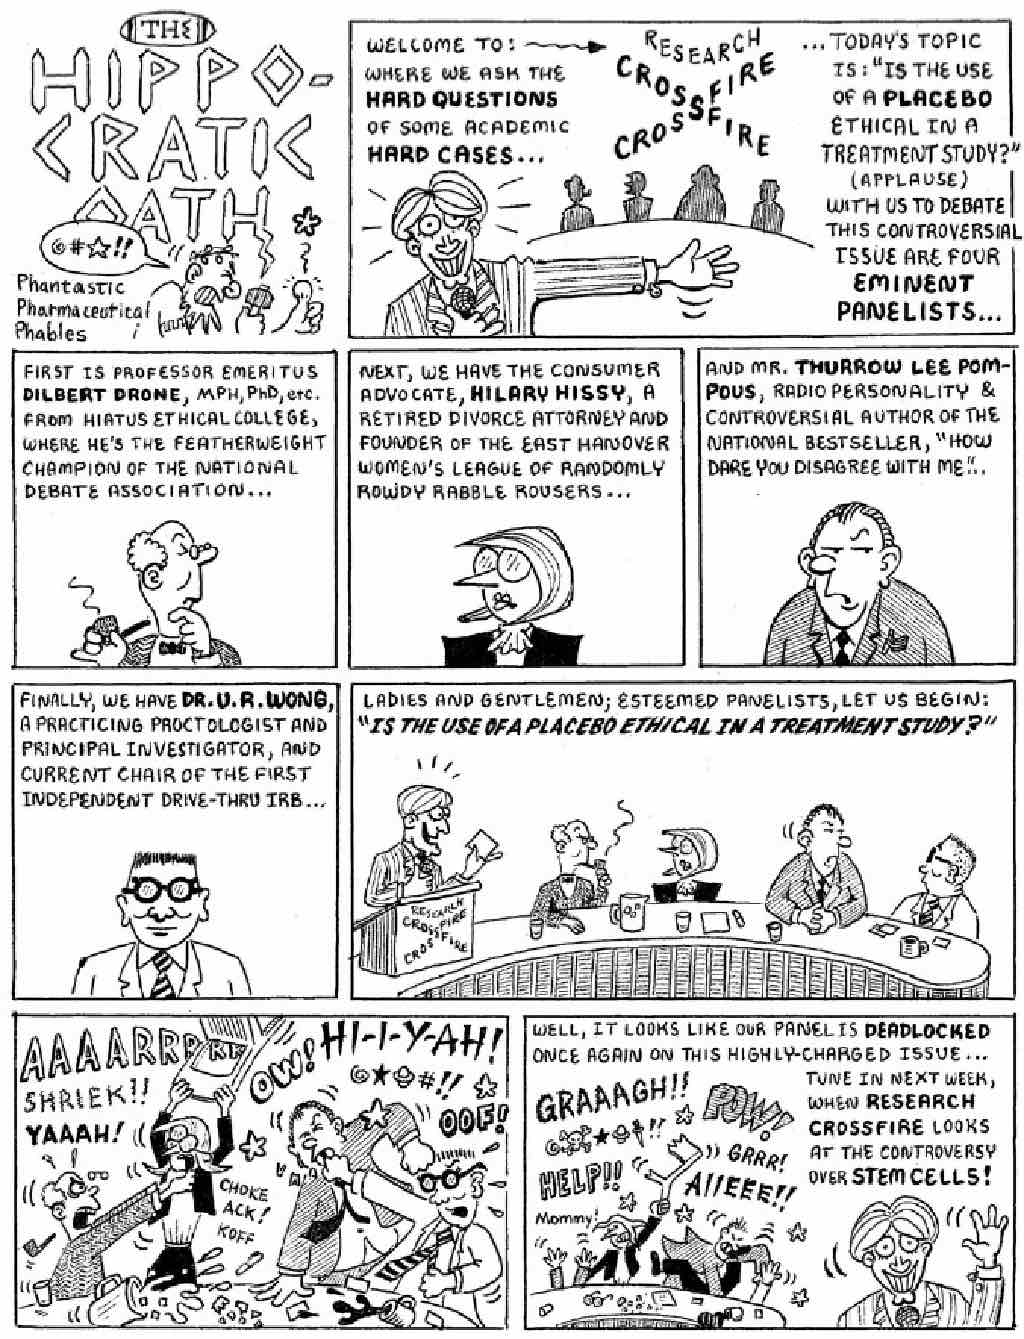 A funny cartoon about a panel of ethicists brawling about the use of placebo in clinical trials